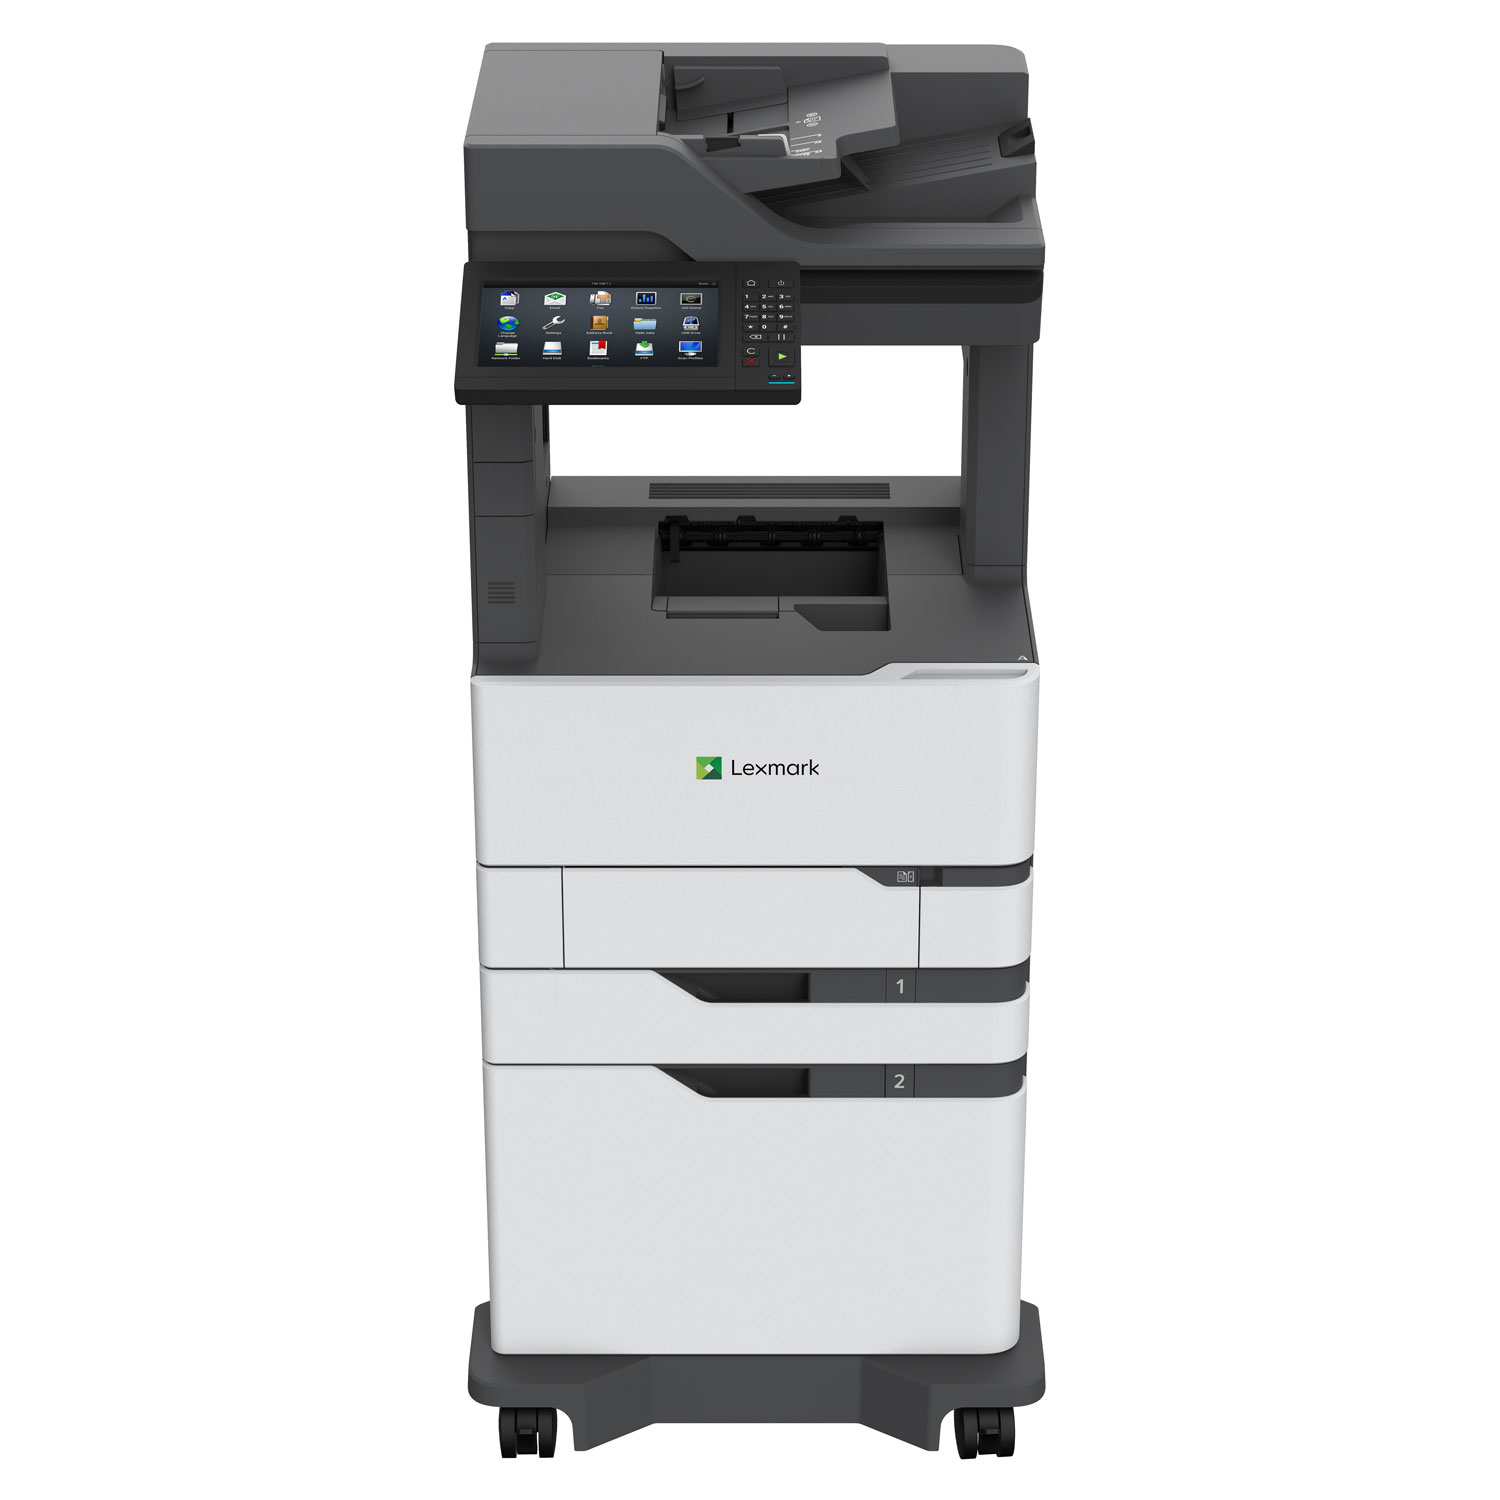 MX826adxe Multifunction Printer, Copy/Fax/Print/Scan